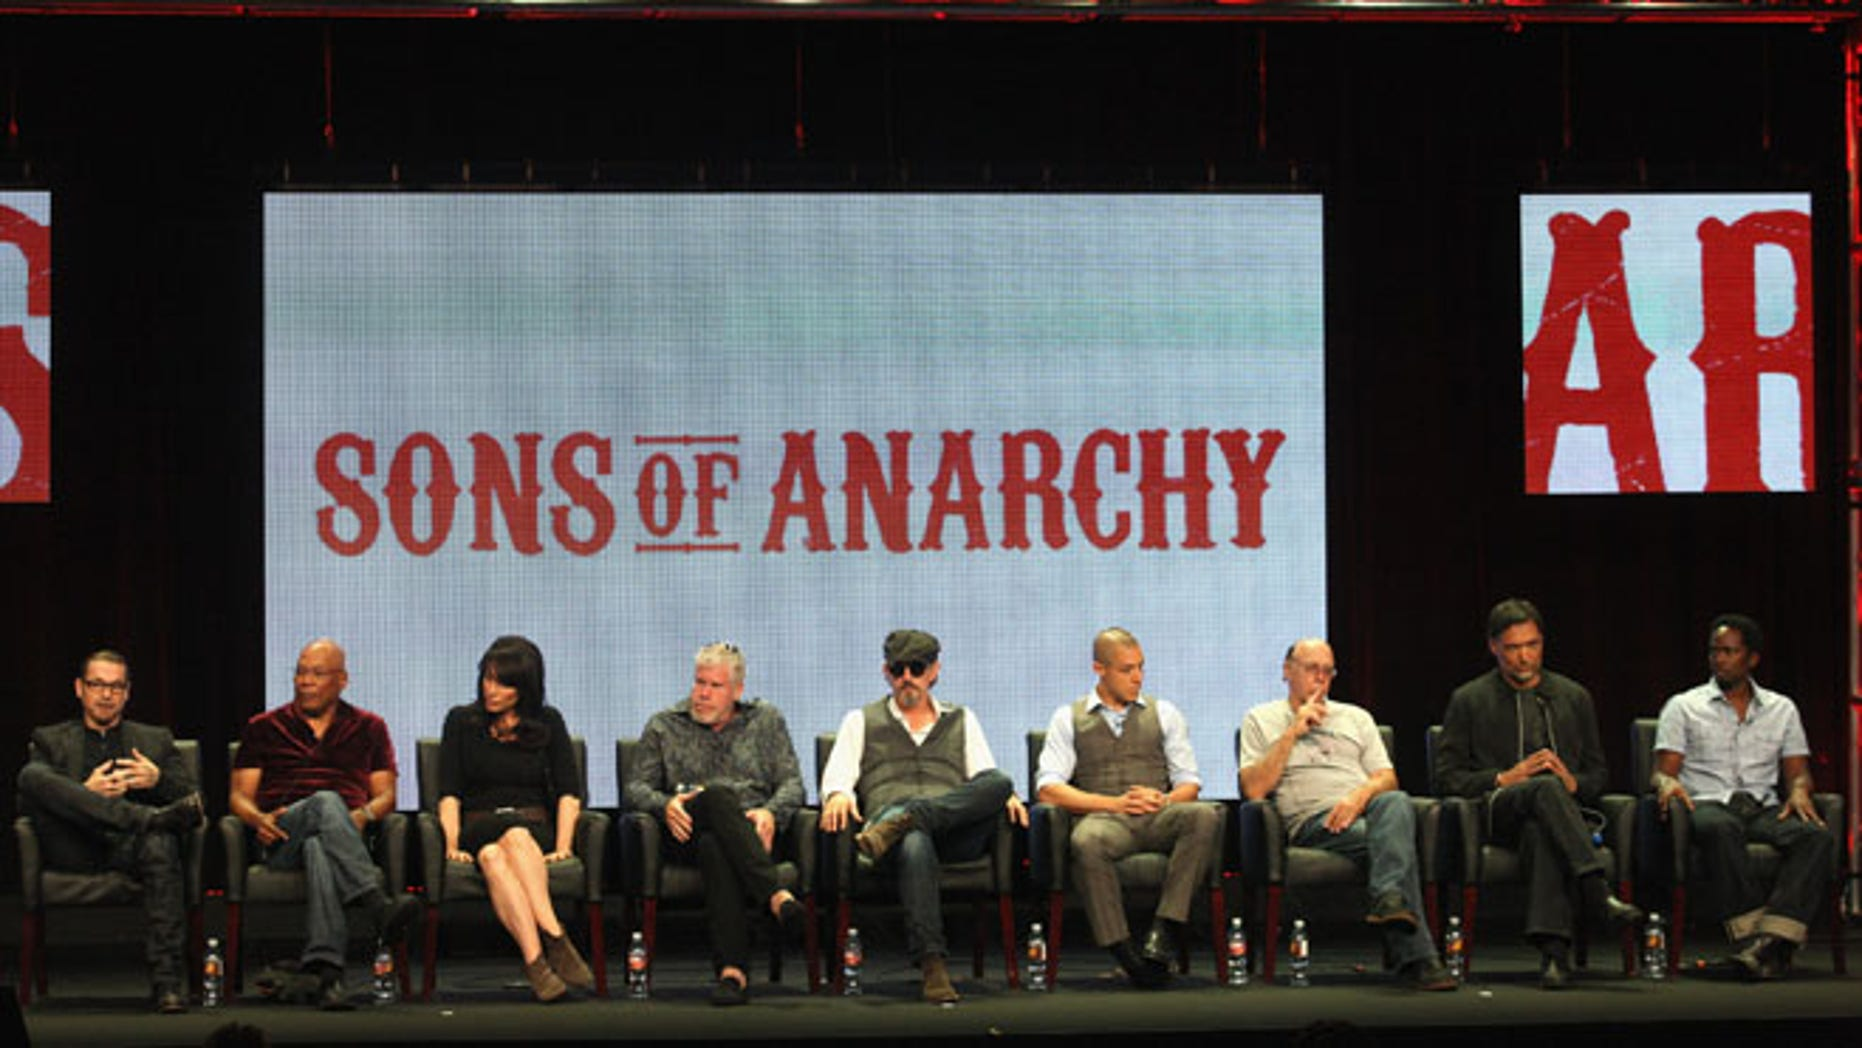 'Sons of Anarchy' panel during the FX portion of the 2012 Summer TCA Tour on July 28, 2012 in Beverly Hills, California.